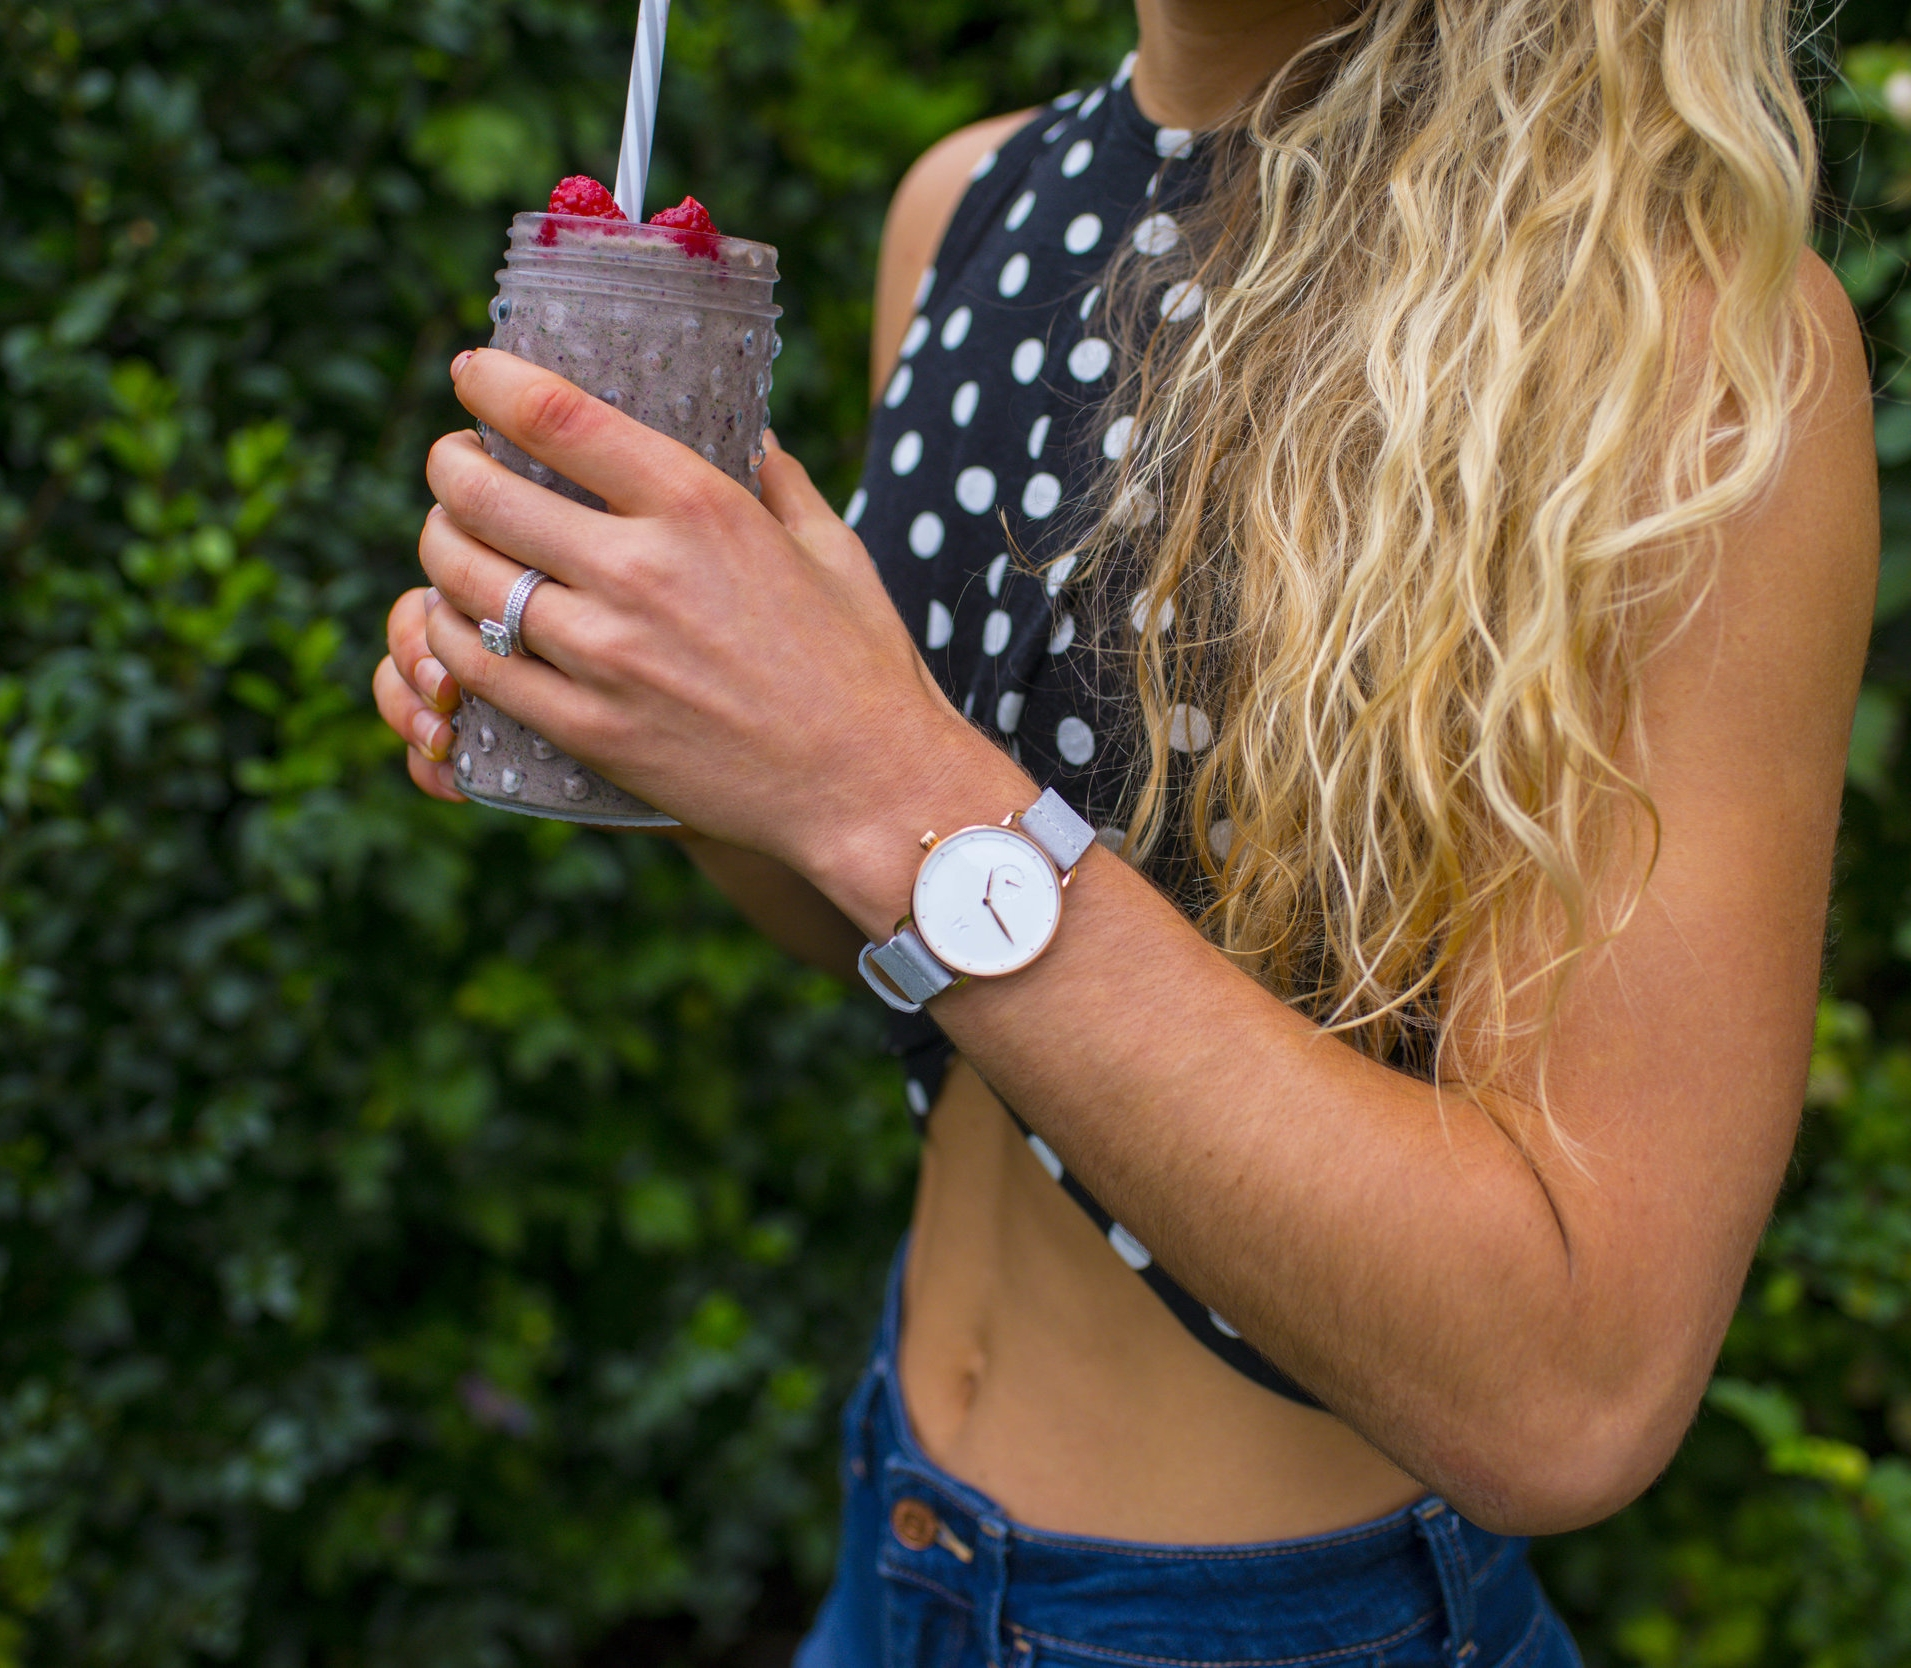 """MVMT Watches for women. DISCOUNT CODE for $15 off any purchase! Use code """"Fitstagram15"""""""